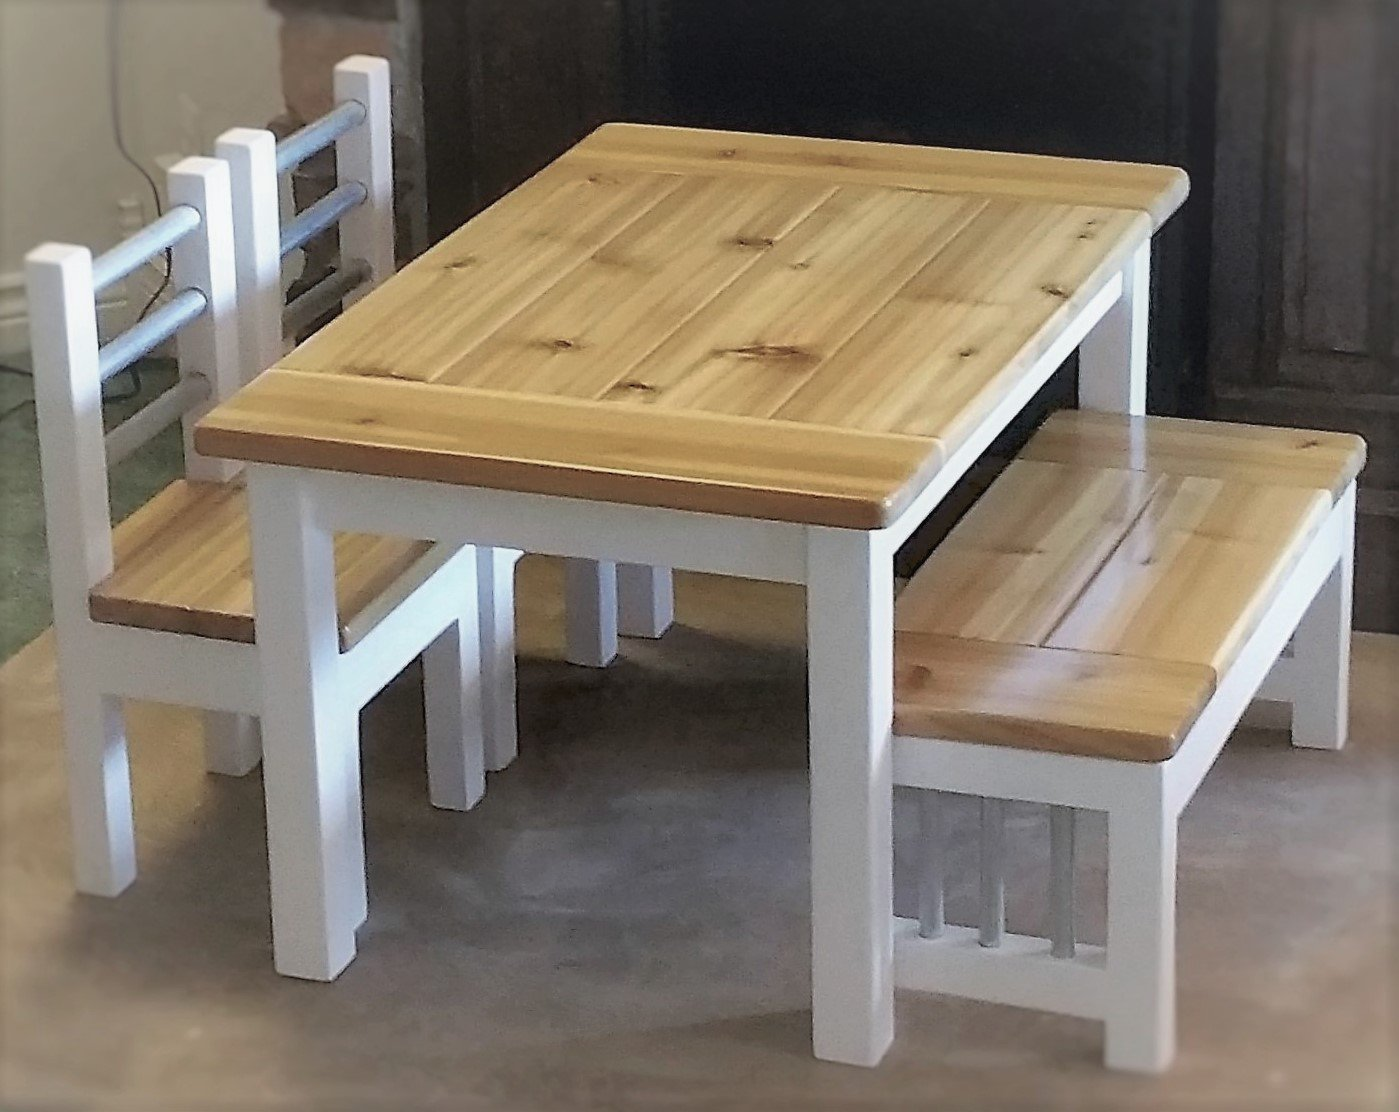 Rustic Kids Farmhouse Table Set Toddler Table And Chairs Toddler Table Kids Table And Chairs